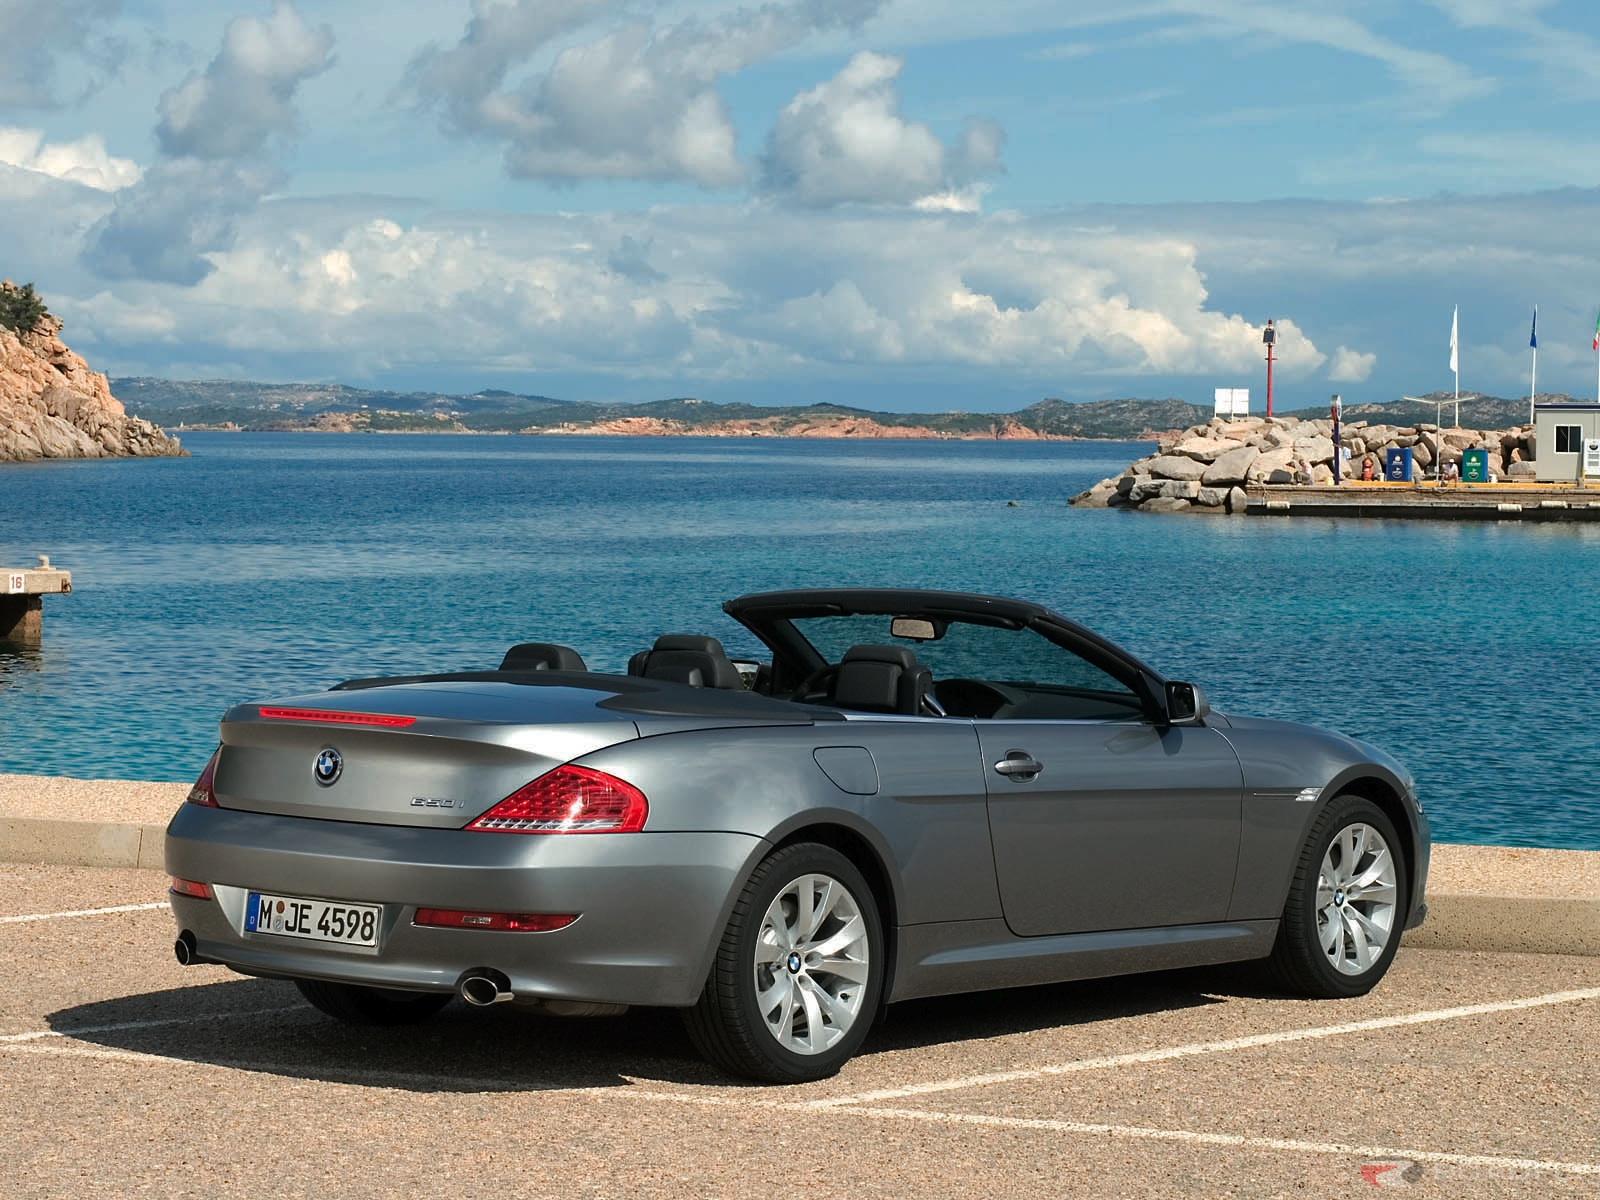 bmw 650i convertible-pic. 1